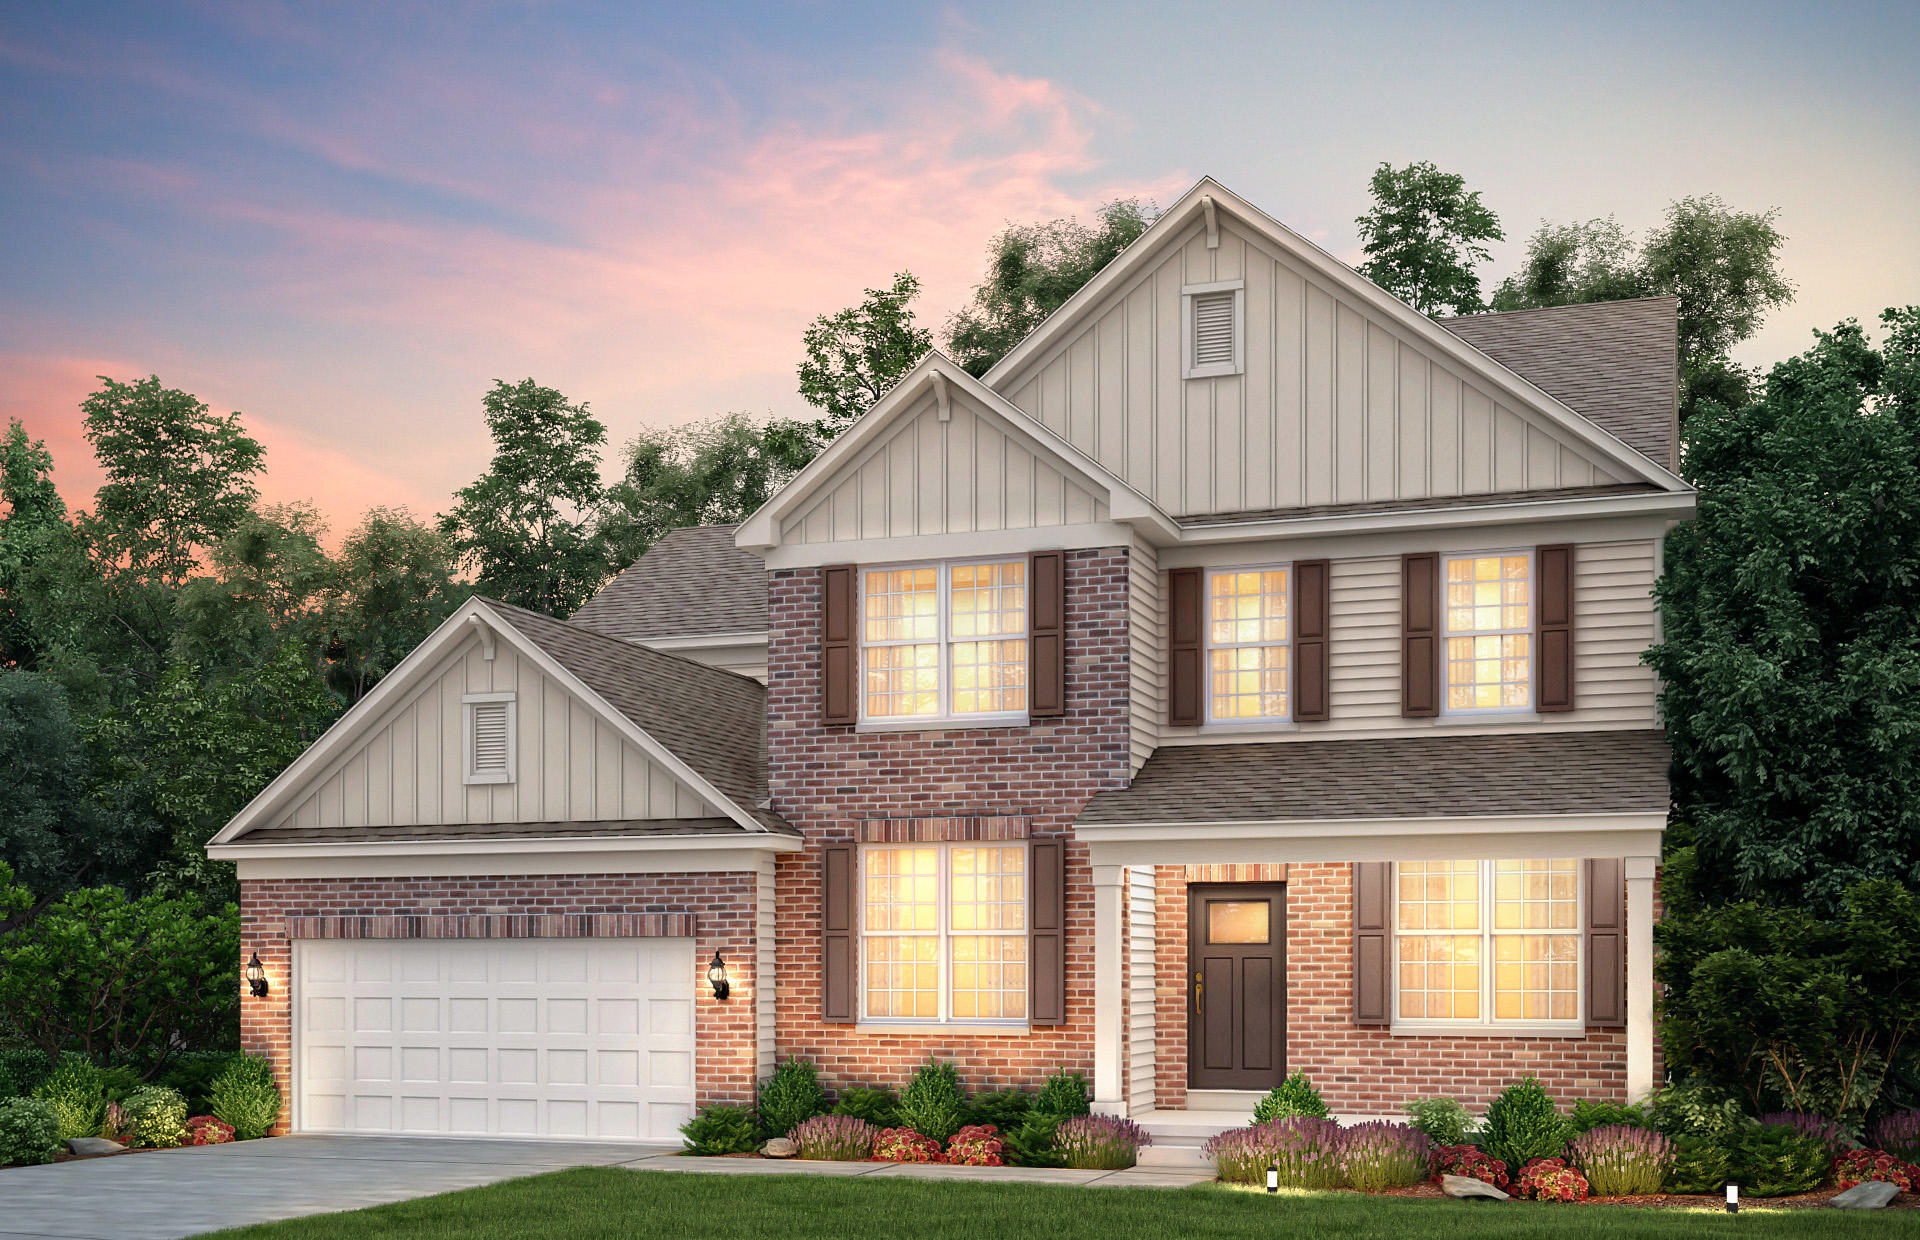 Finley Park by Pulte Homes image 3